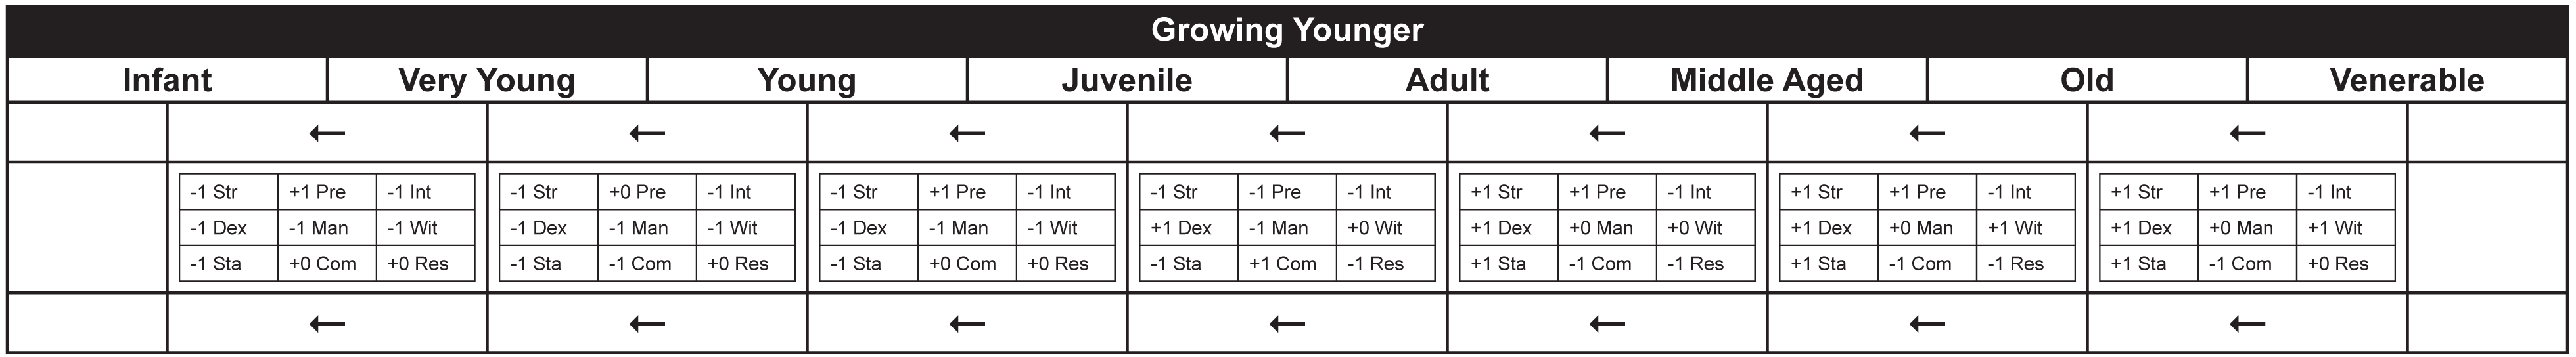 growing_younger.jpg